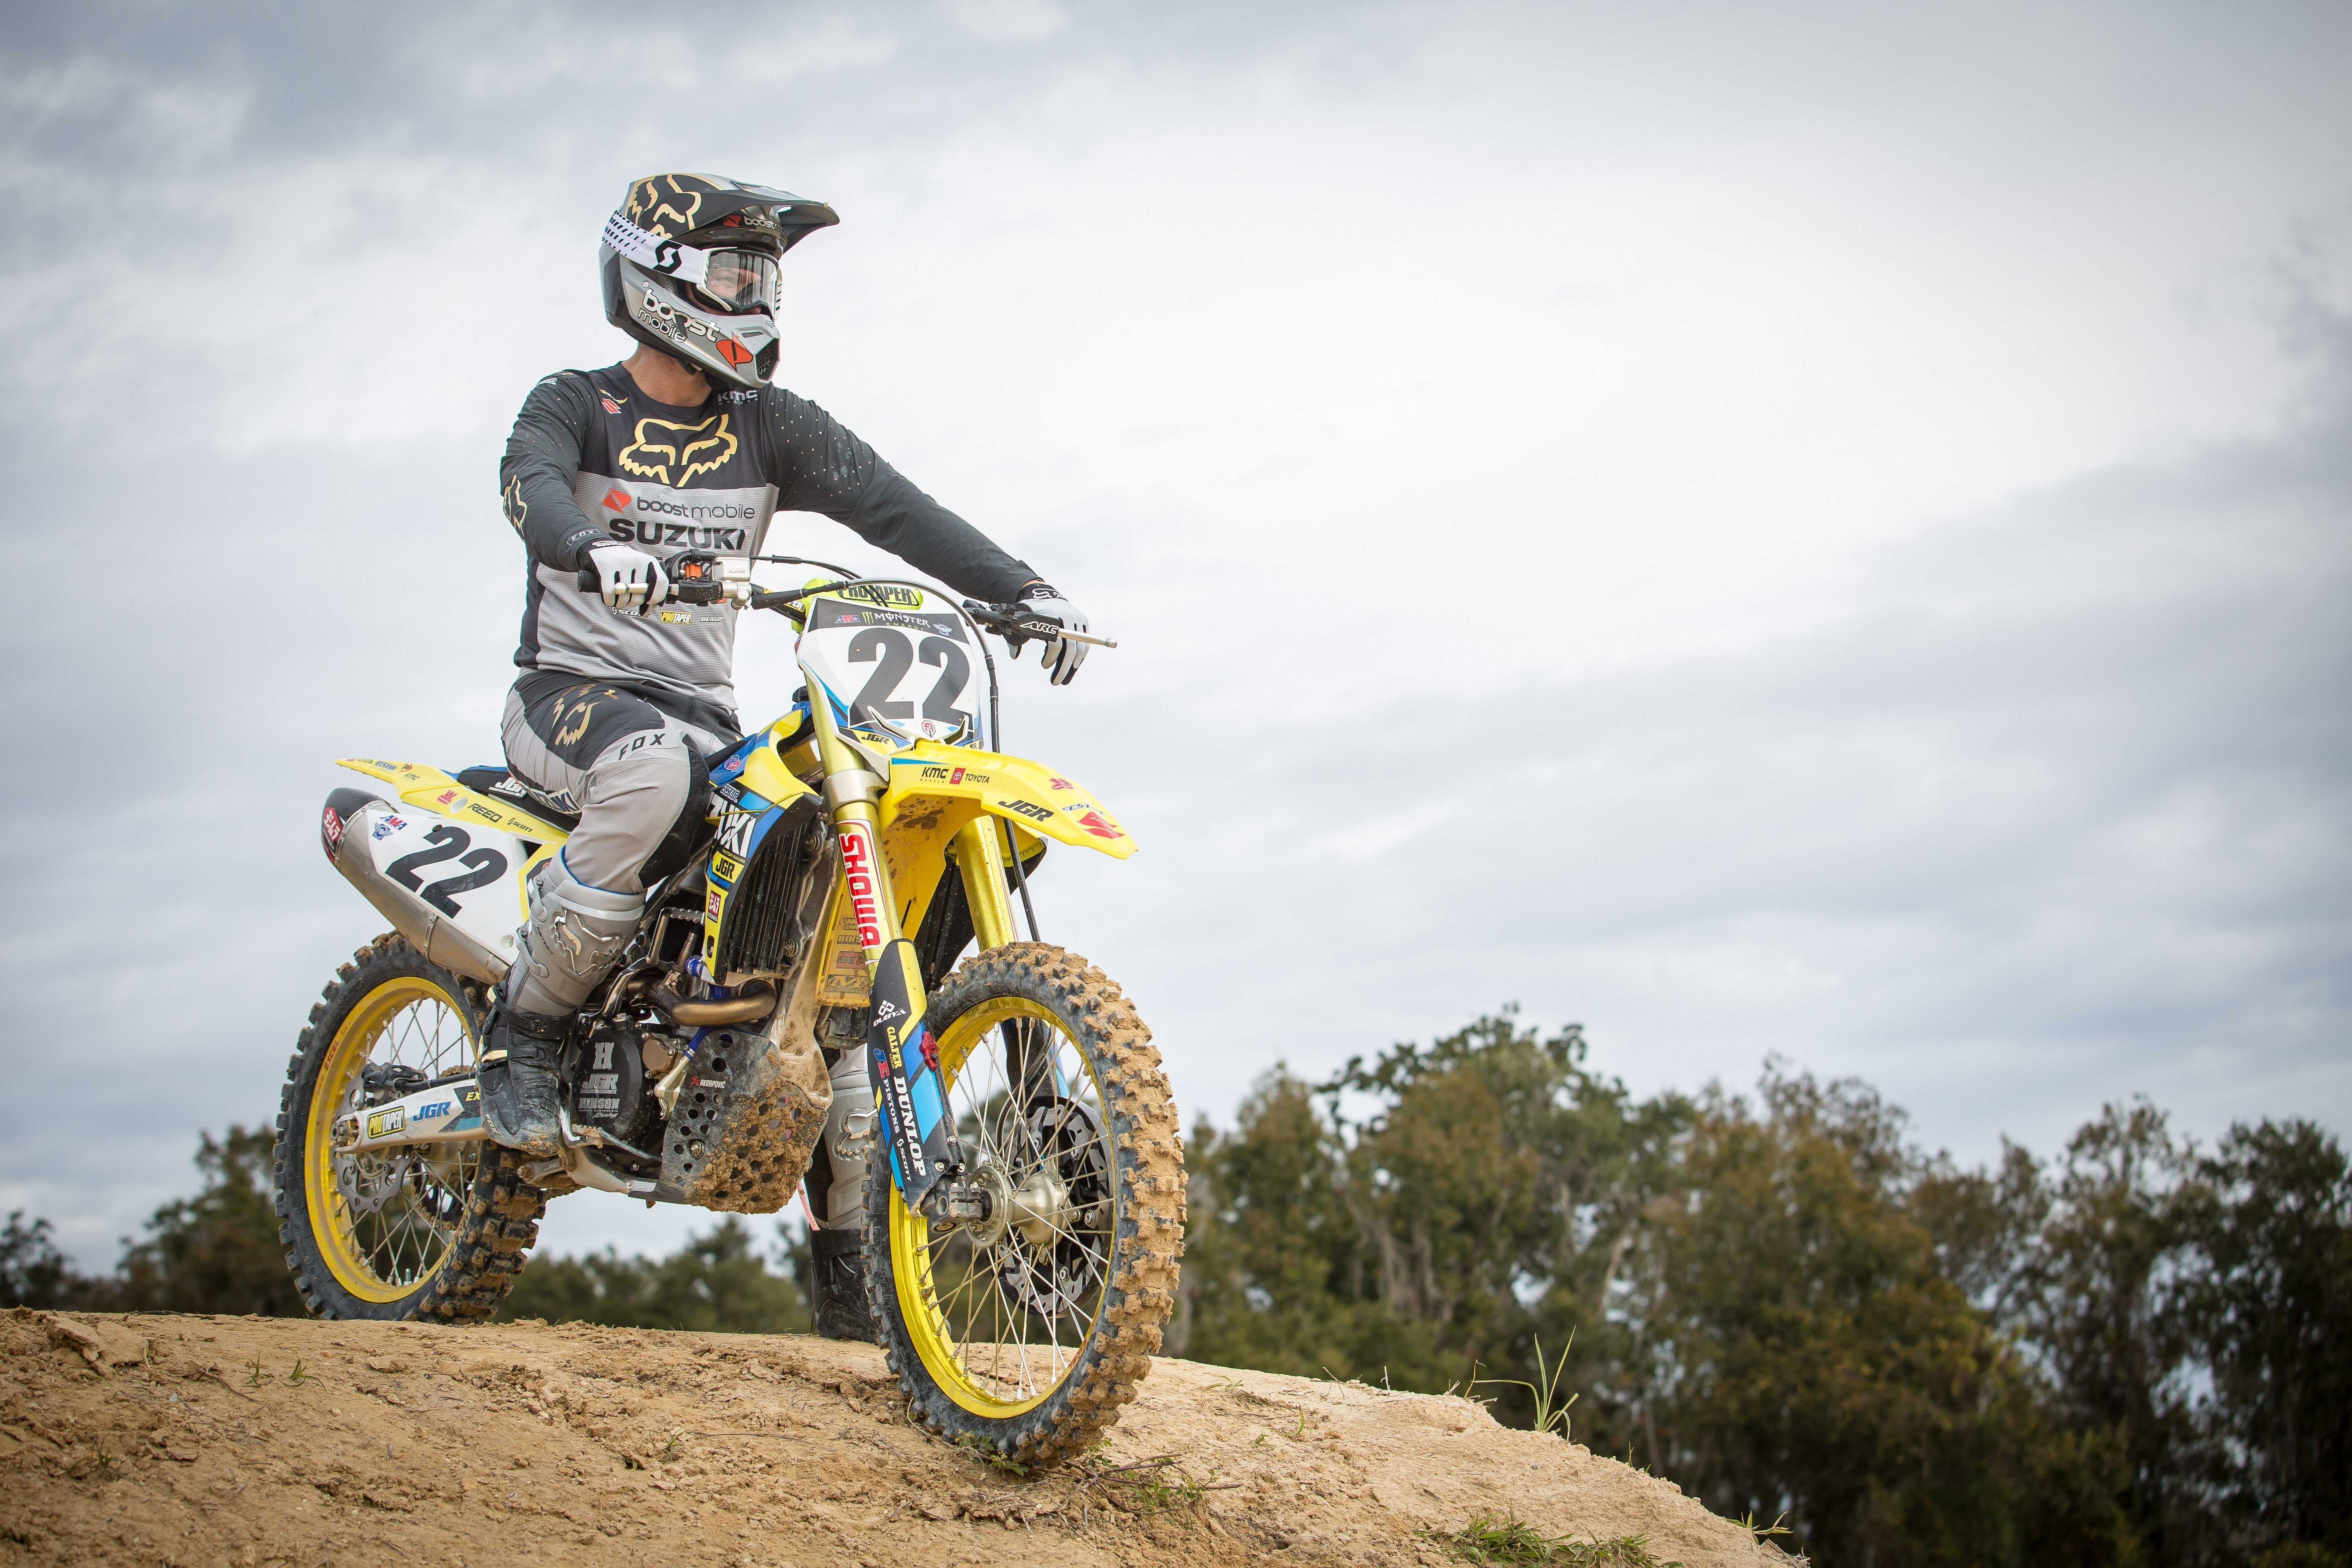 An Inside Look at Chad Reed's 2019 Factory Suzuki RM-Z450